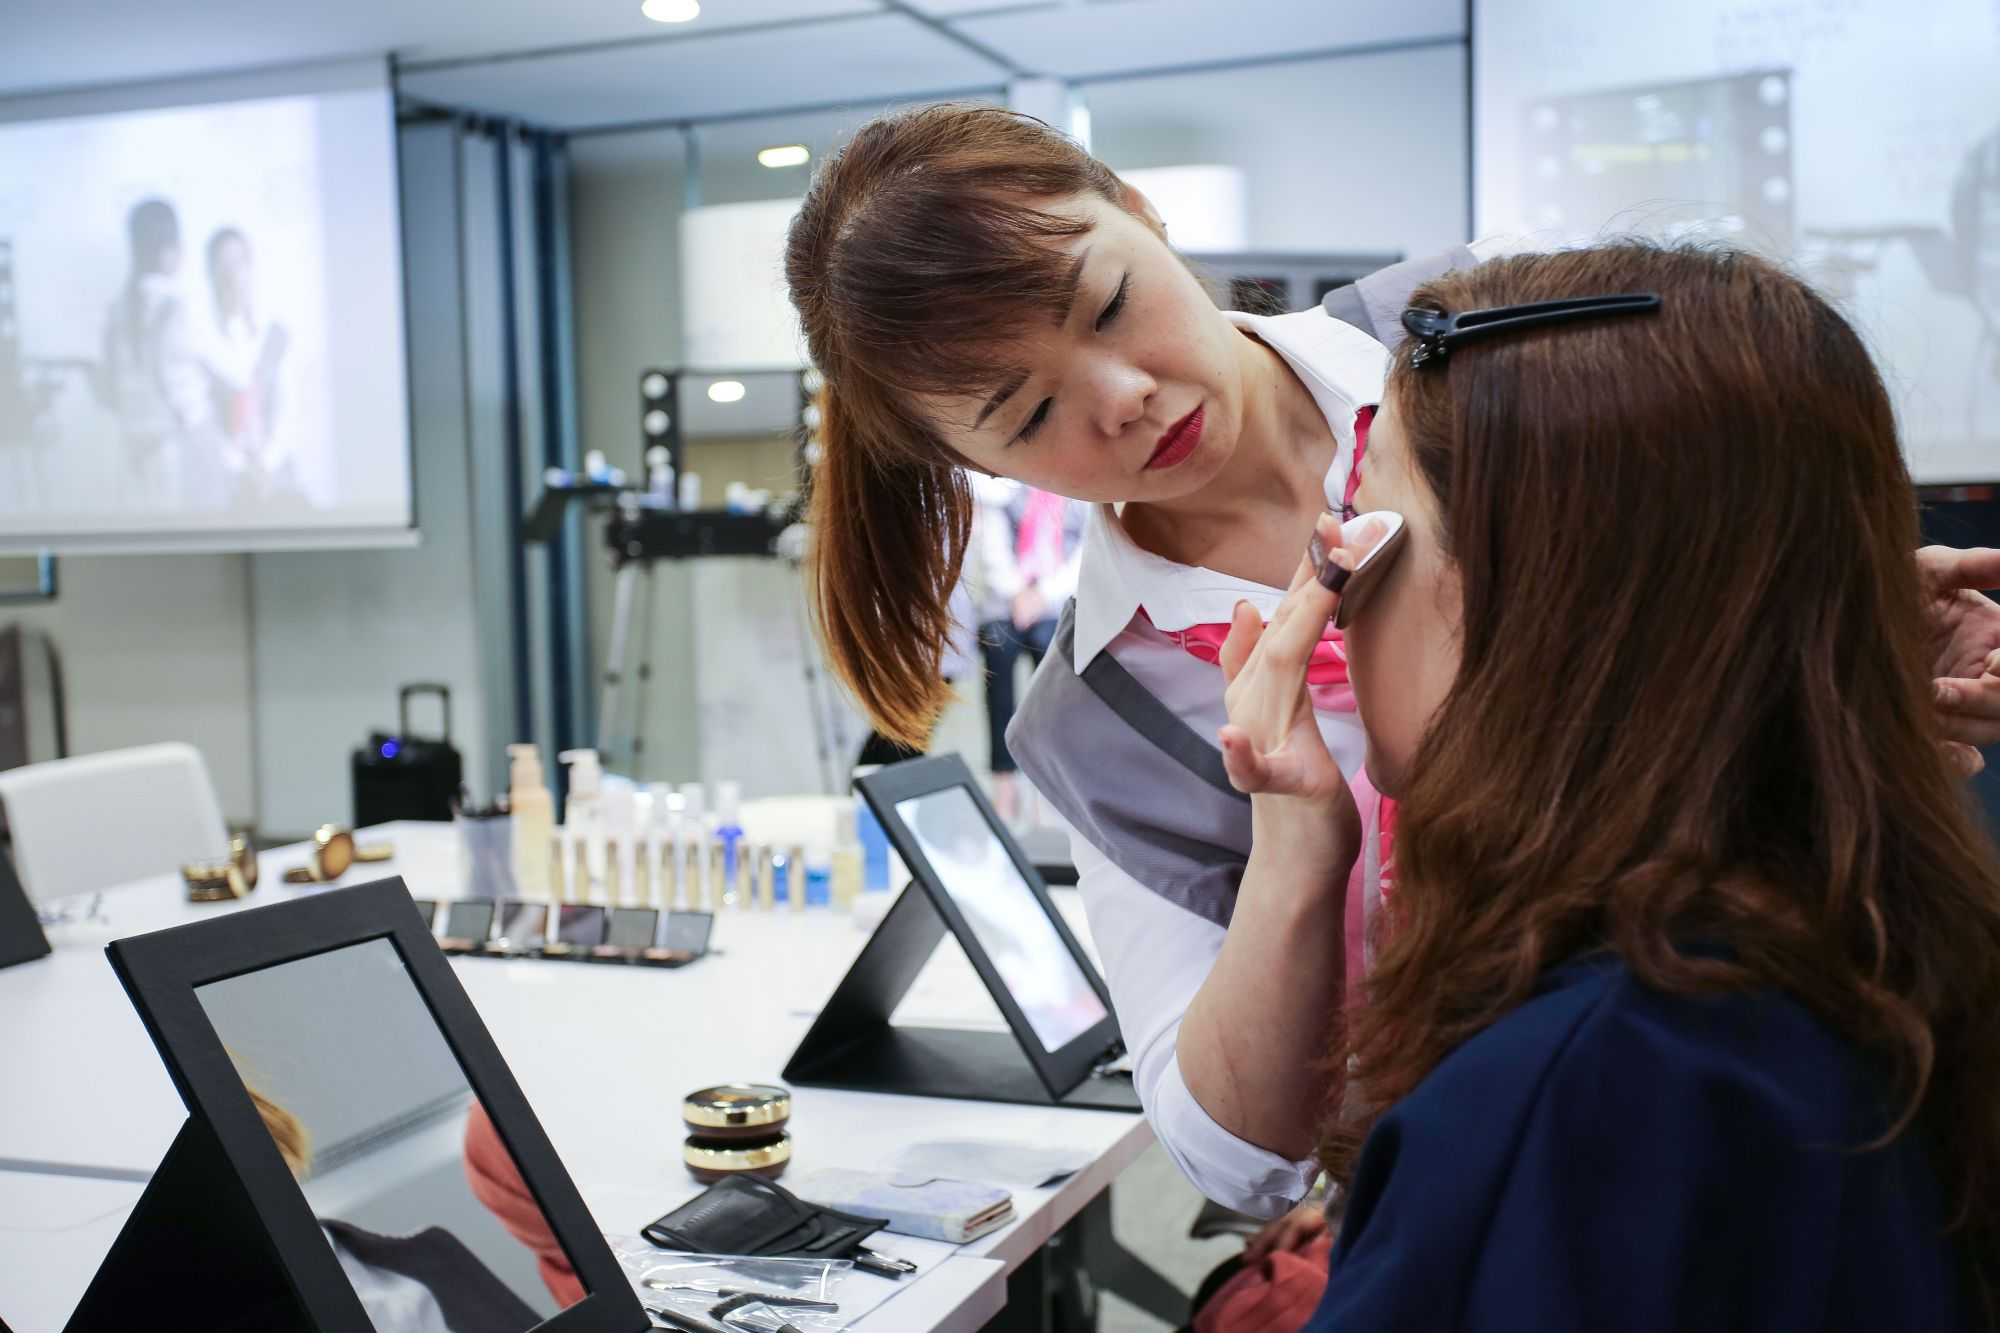 Amorepacific Wants To Create A More Beautiful World, One Woman At A Time